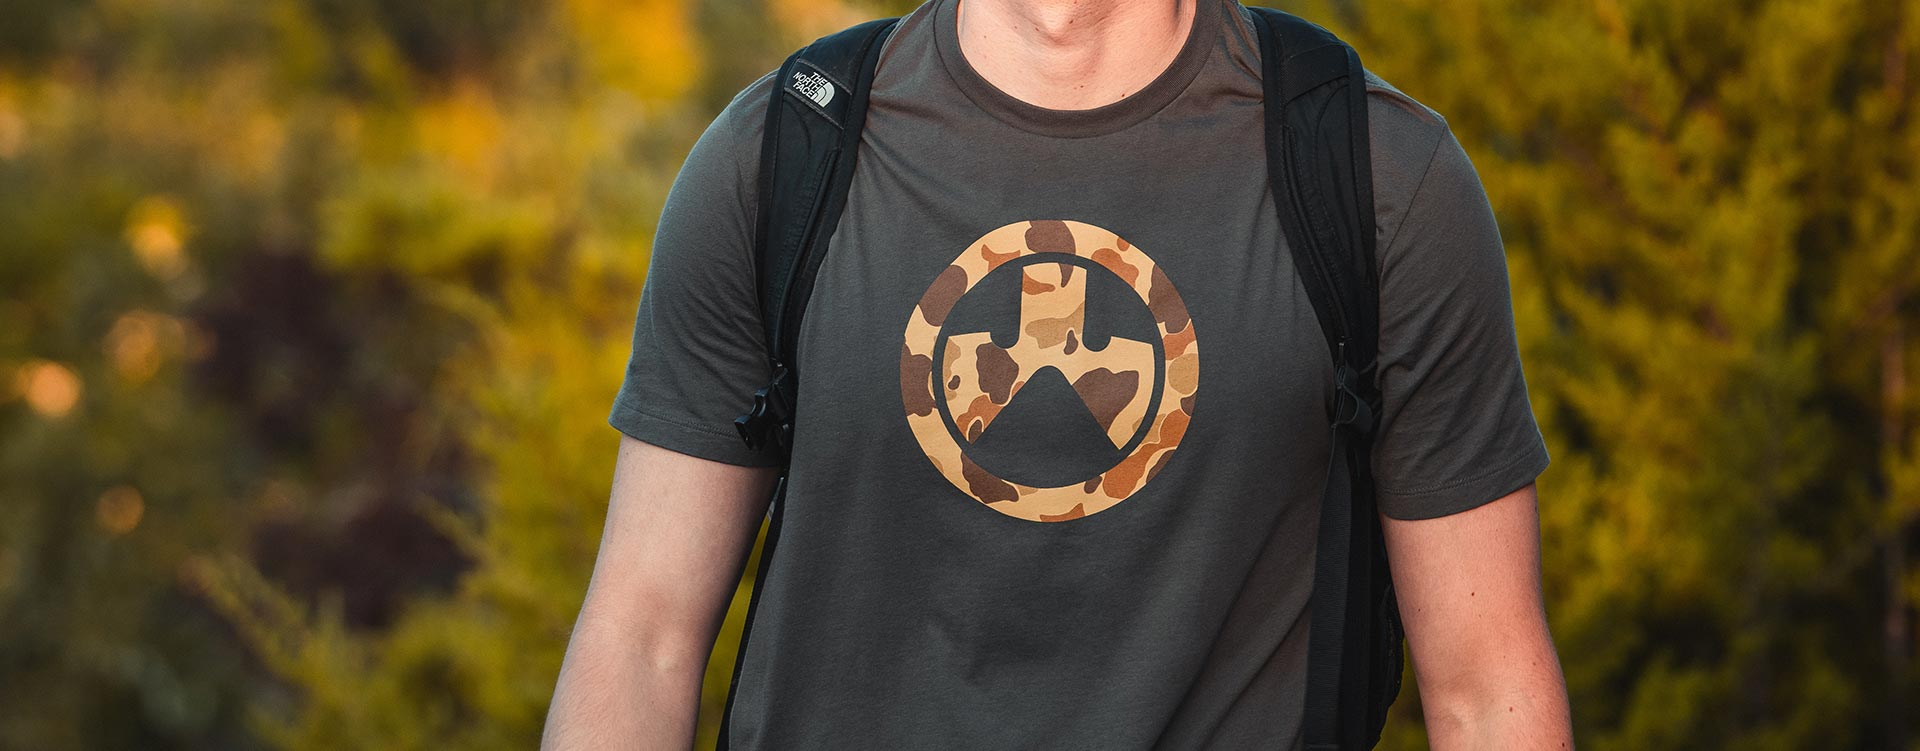 Magpul Raider Camo Icon Cotton T-Shirt worn by a man wearing a backpack outdoors